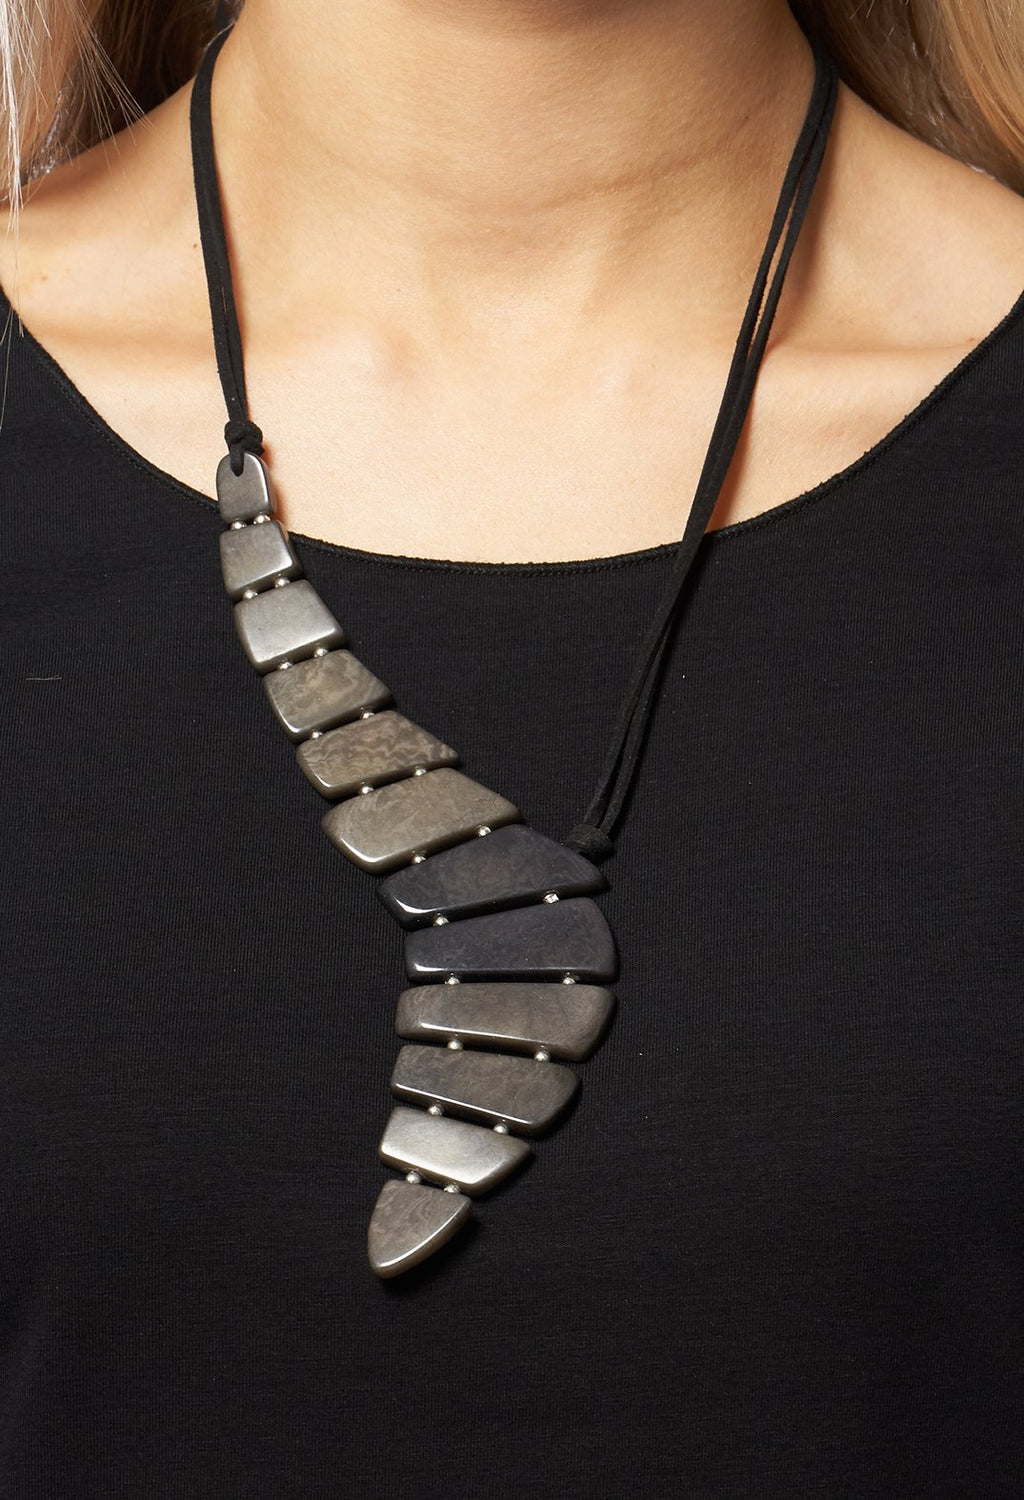 Ripple Pendant Necklace in Grey